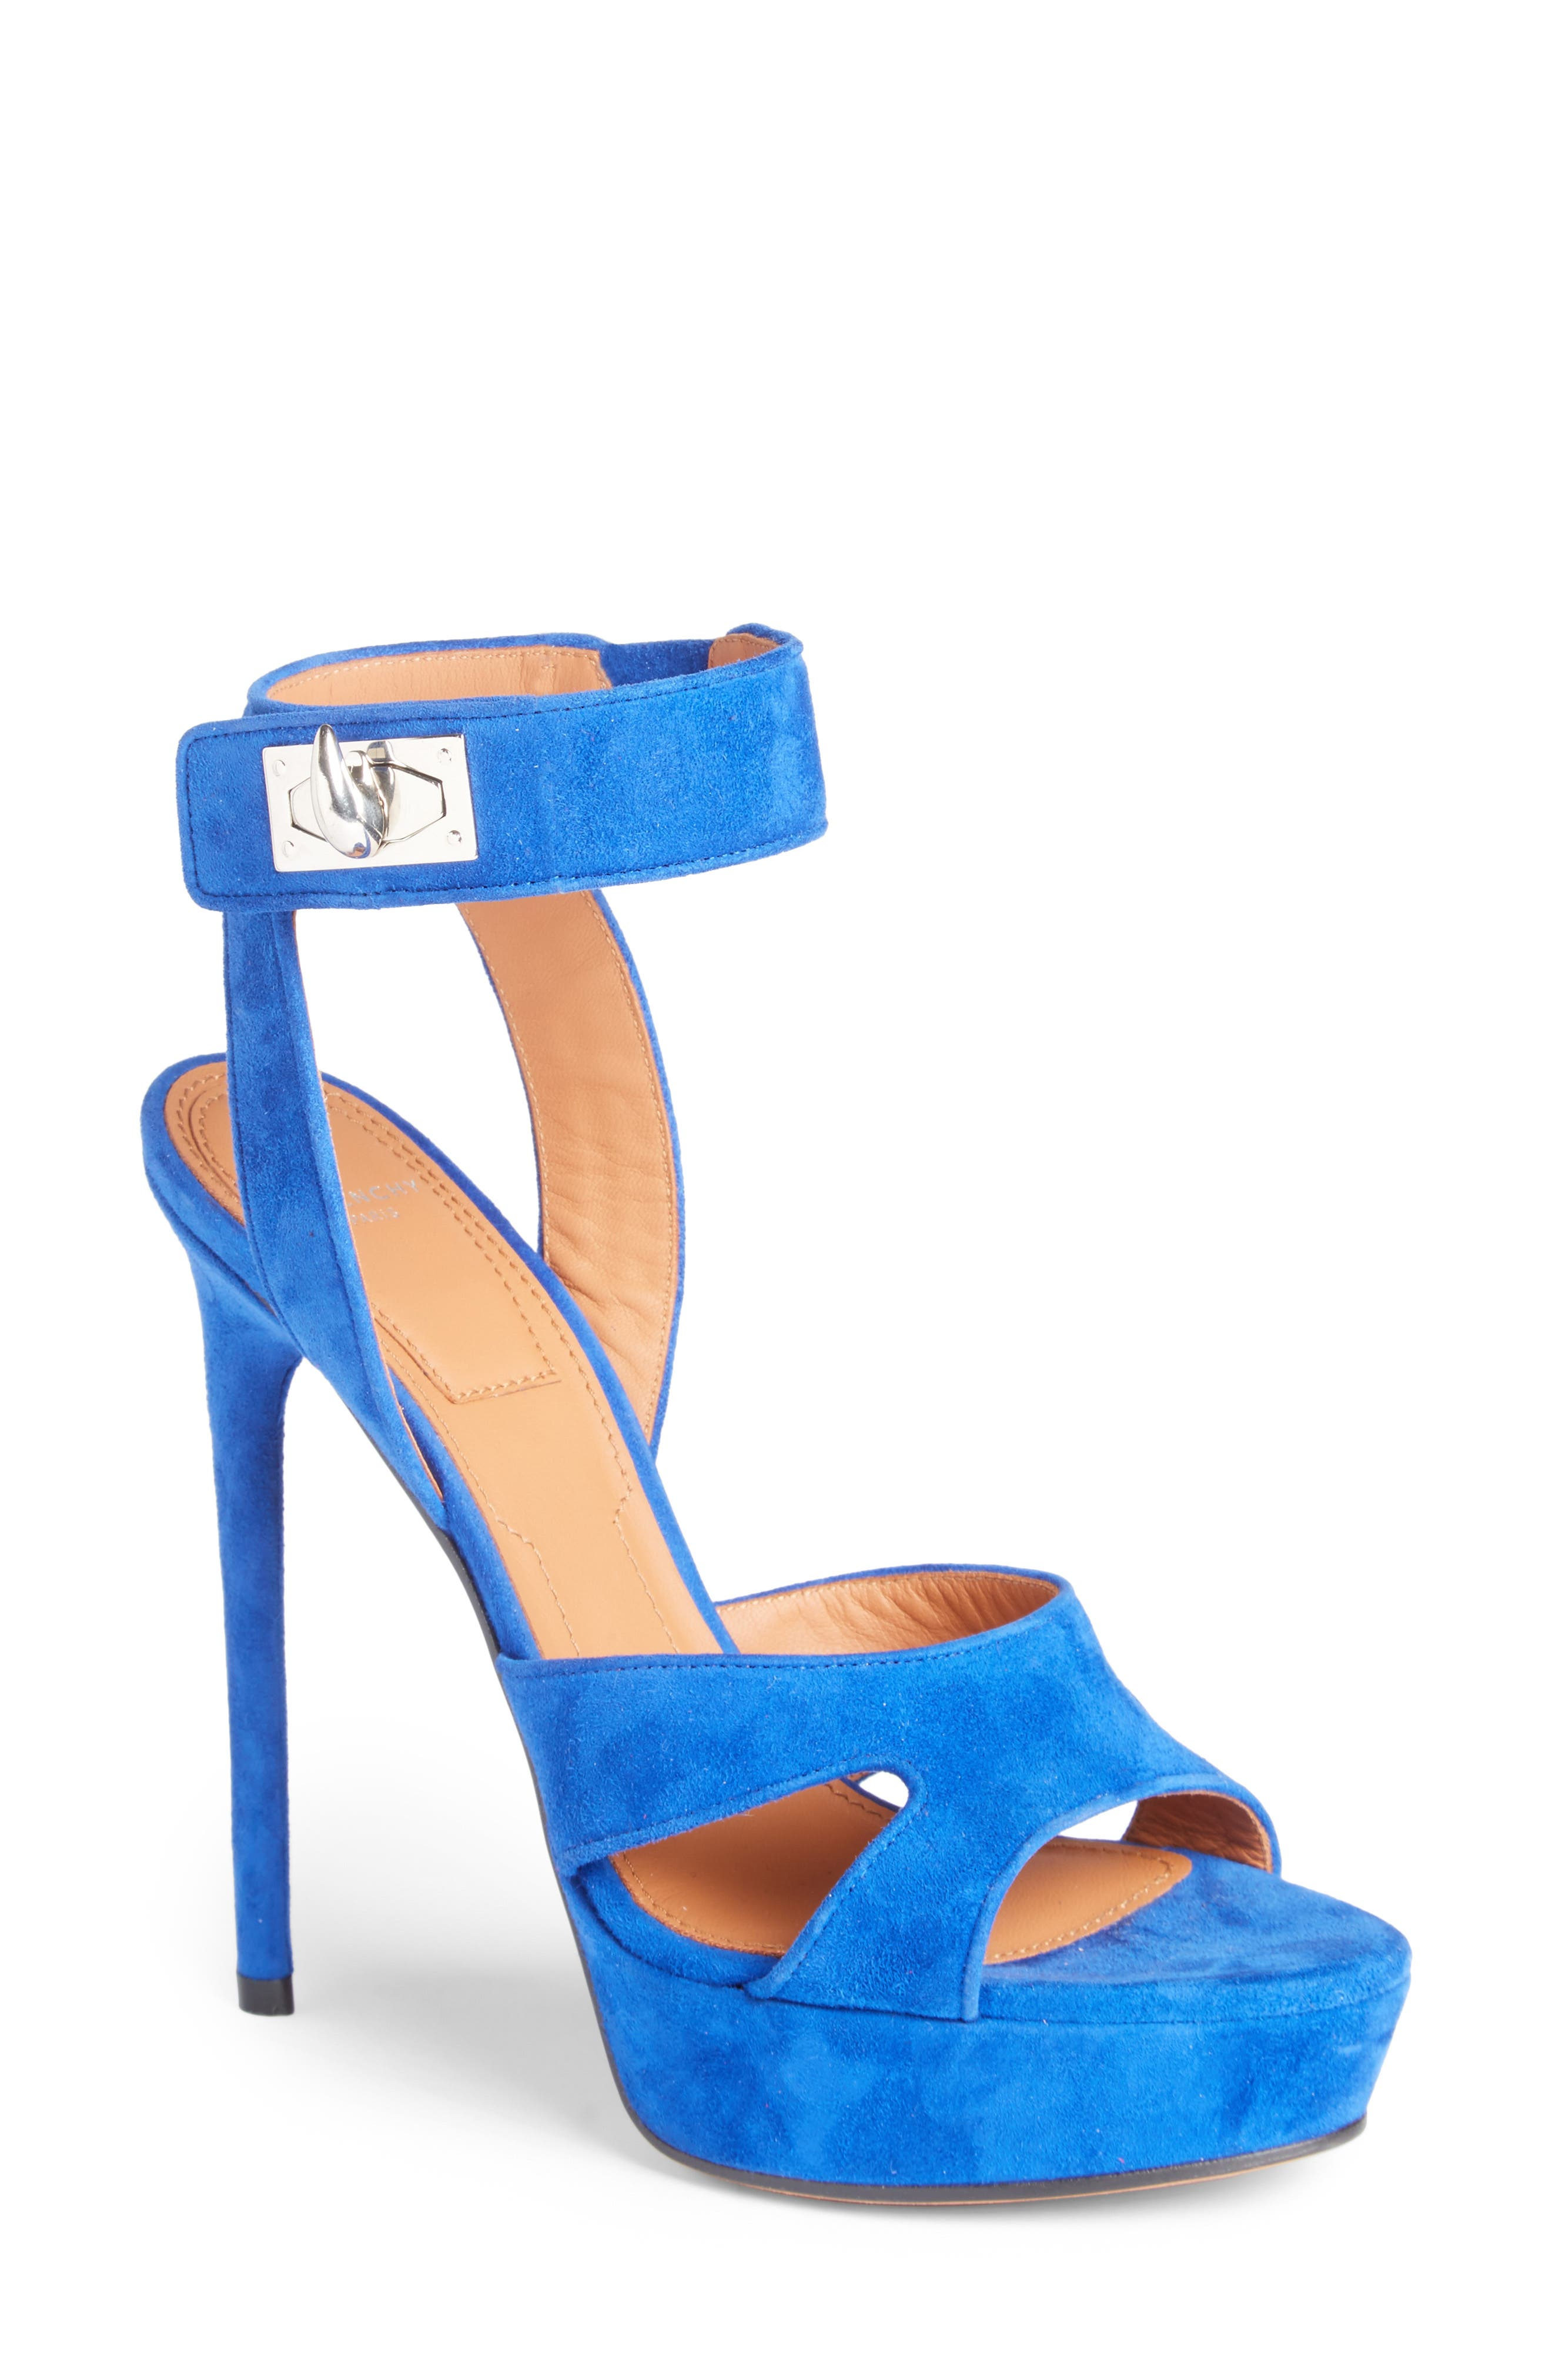 Shark's Tooth Sandal,                         Main,                         color, Electric Blue